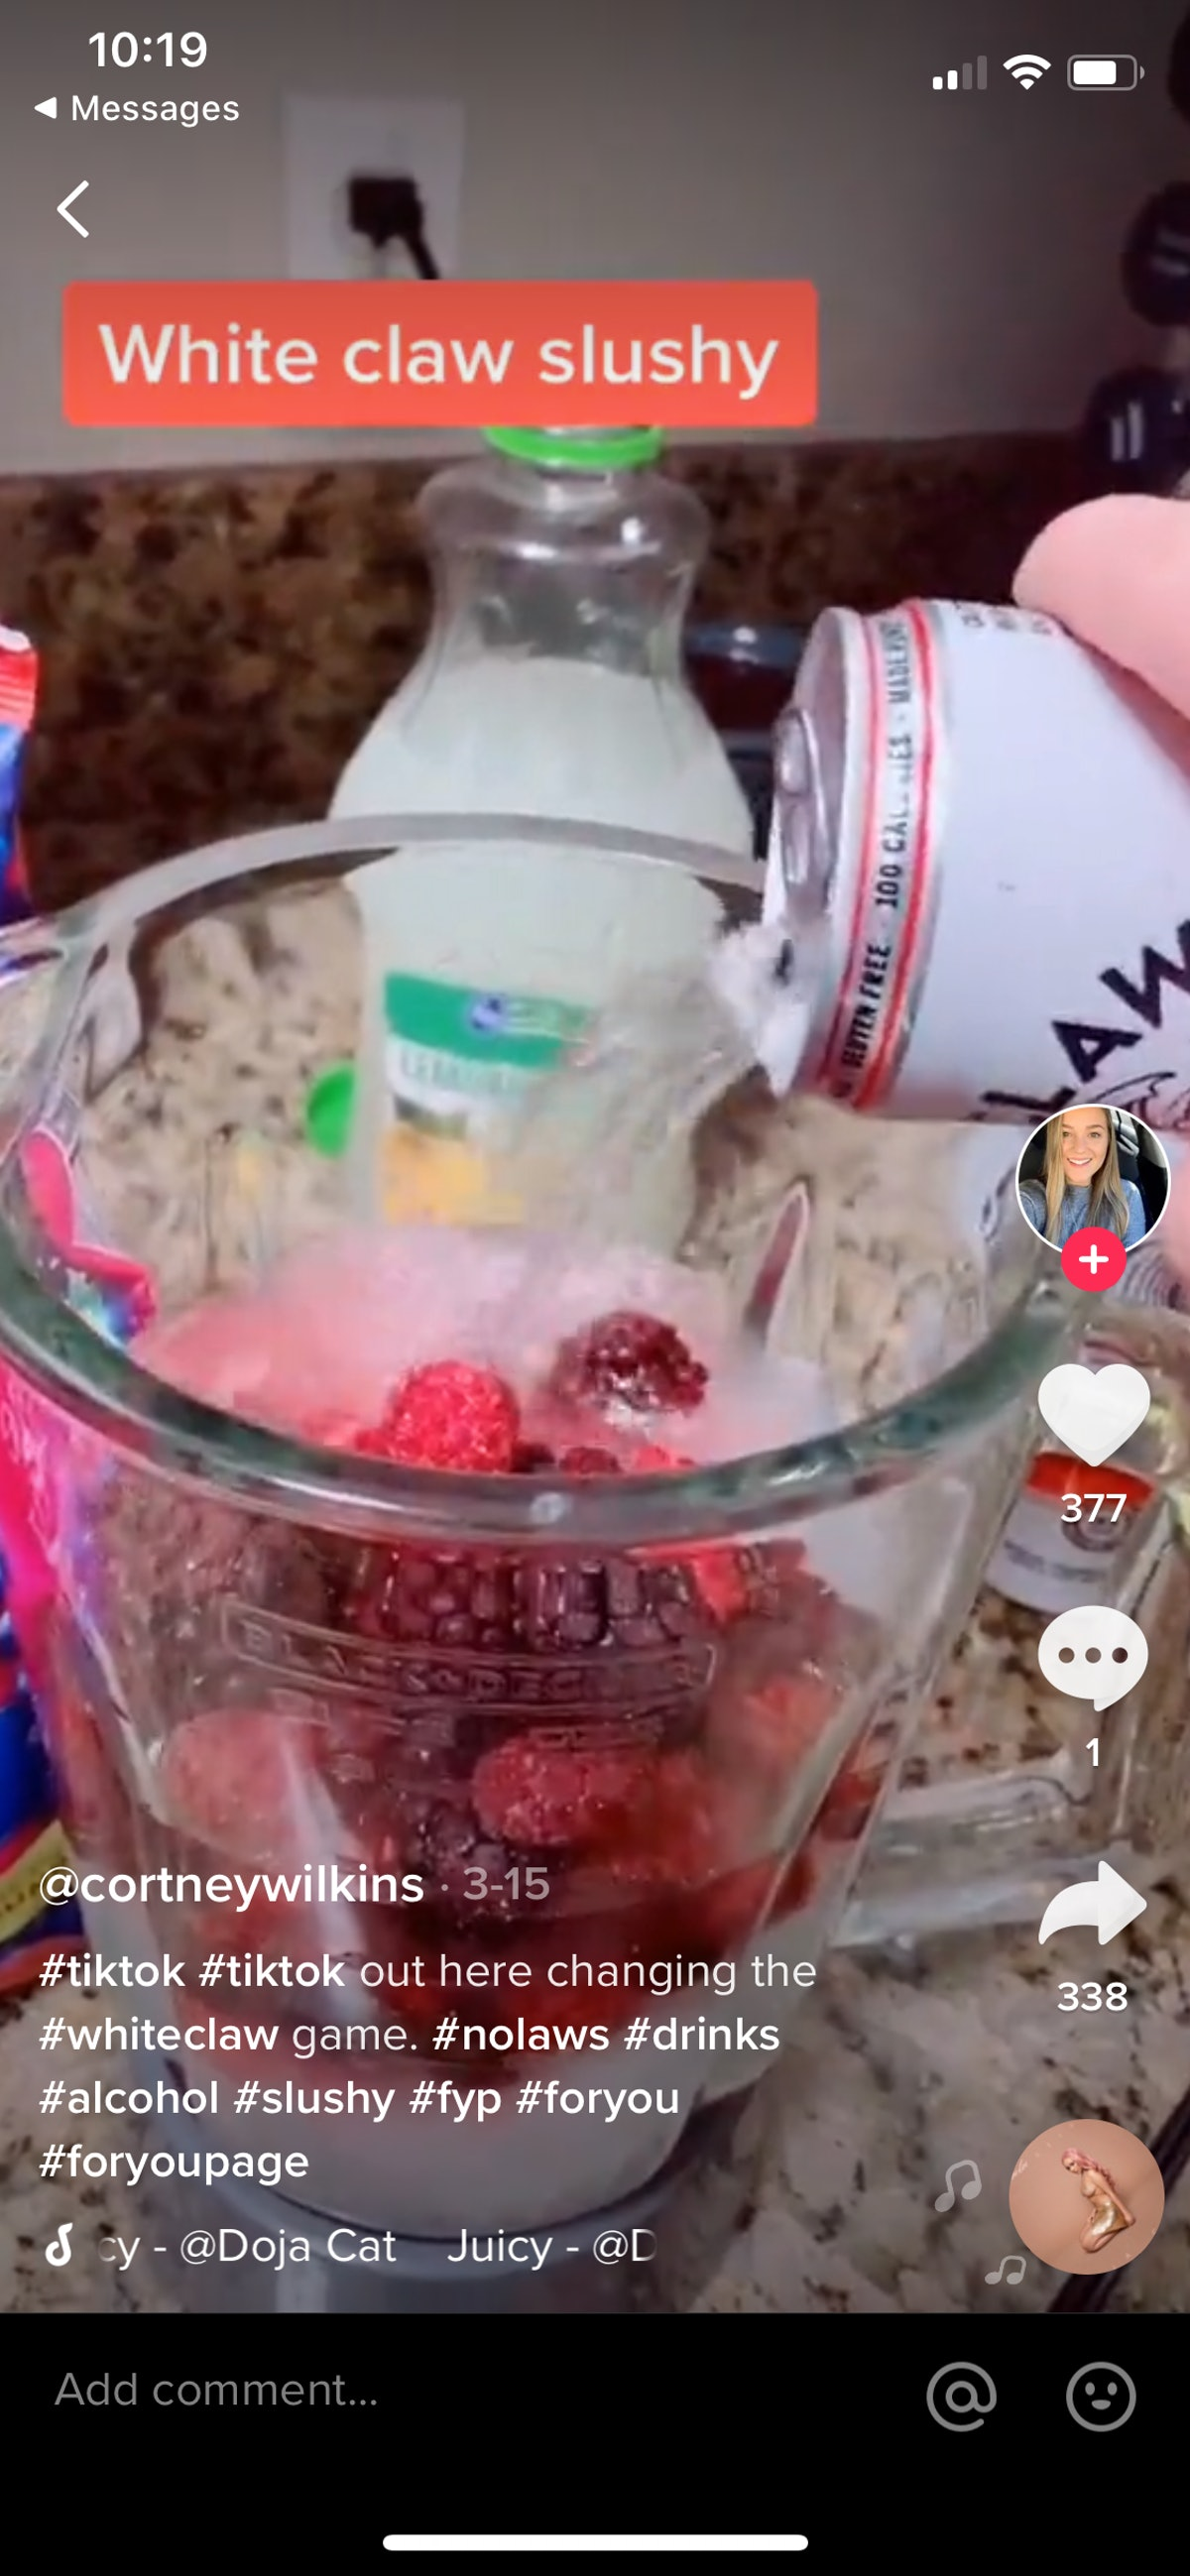 Here's how to make White Claw slushies.